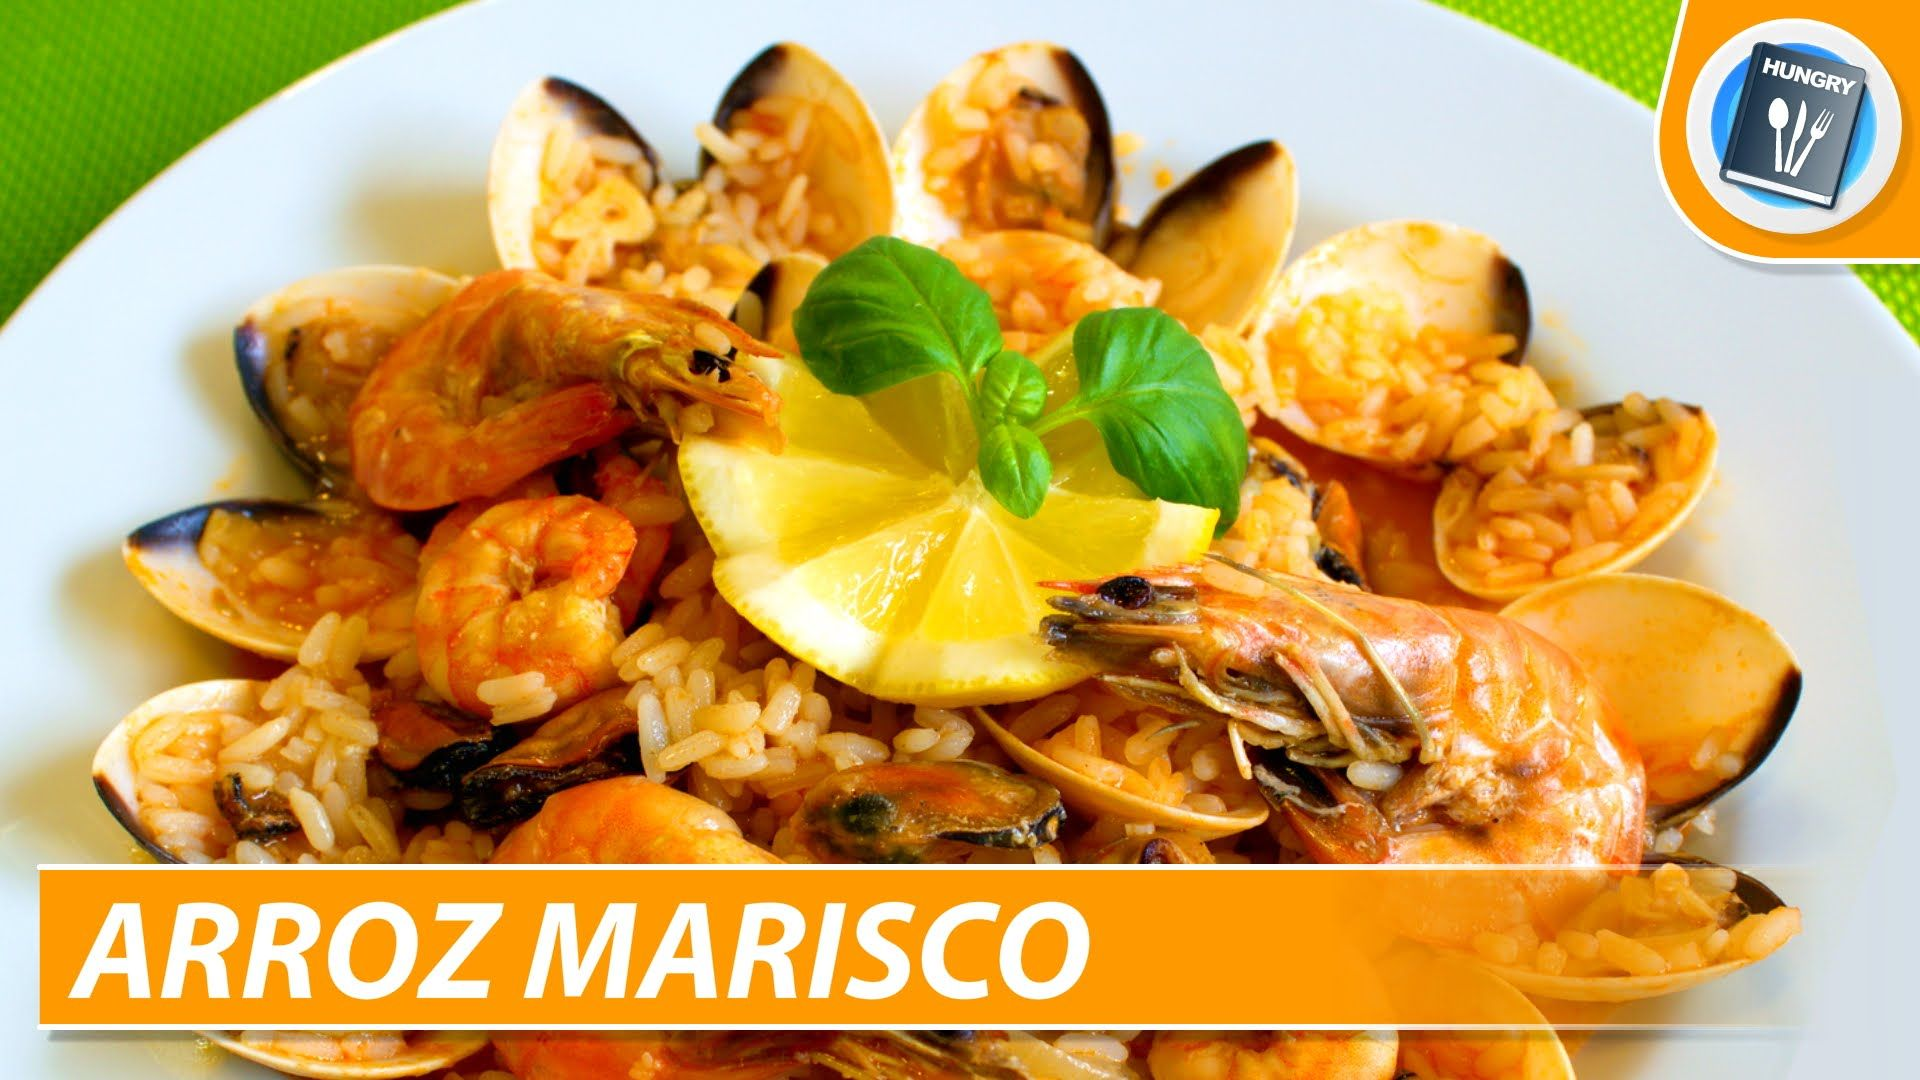 Arroz Marisco, or seafood rice, is one of the greatest fish and rice recipes you ever tried. Its recipe may seem close to spanish paella mariscos, but when y...